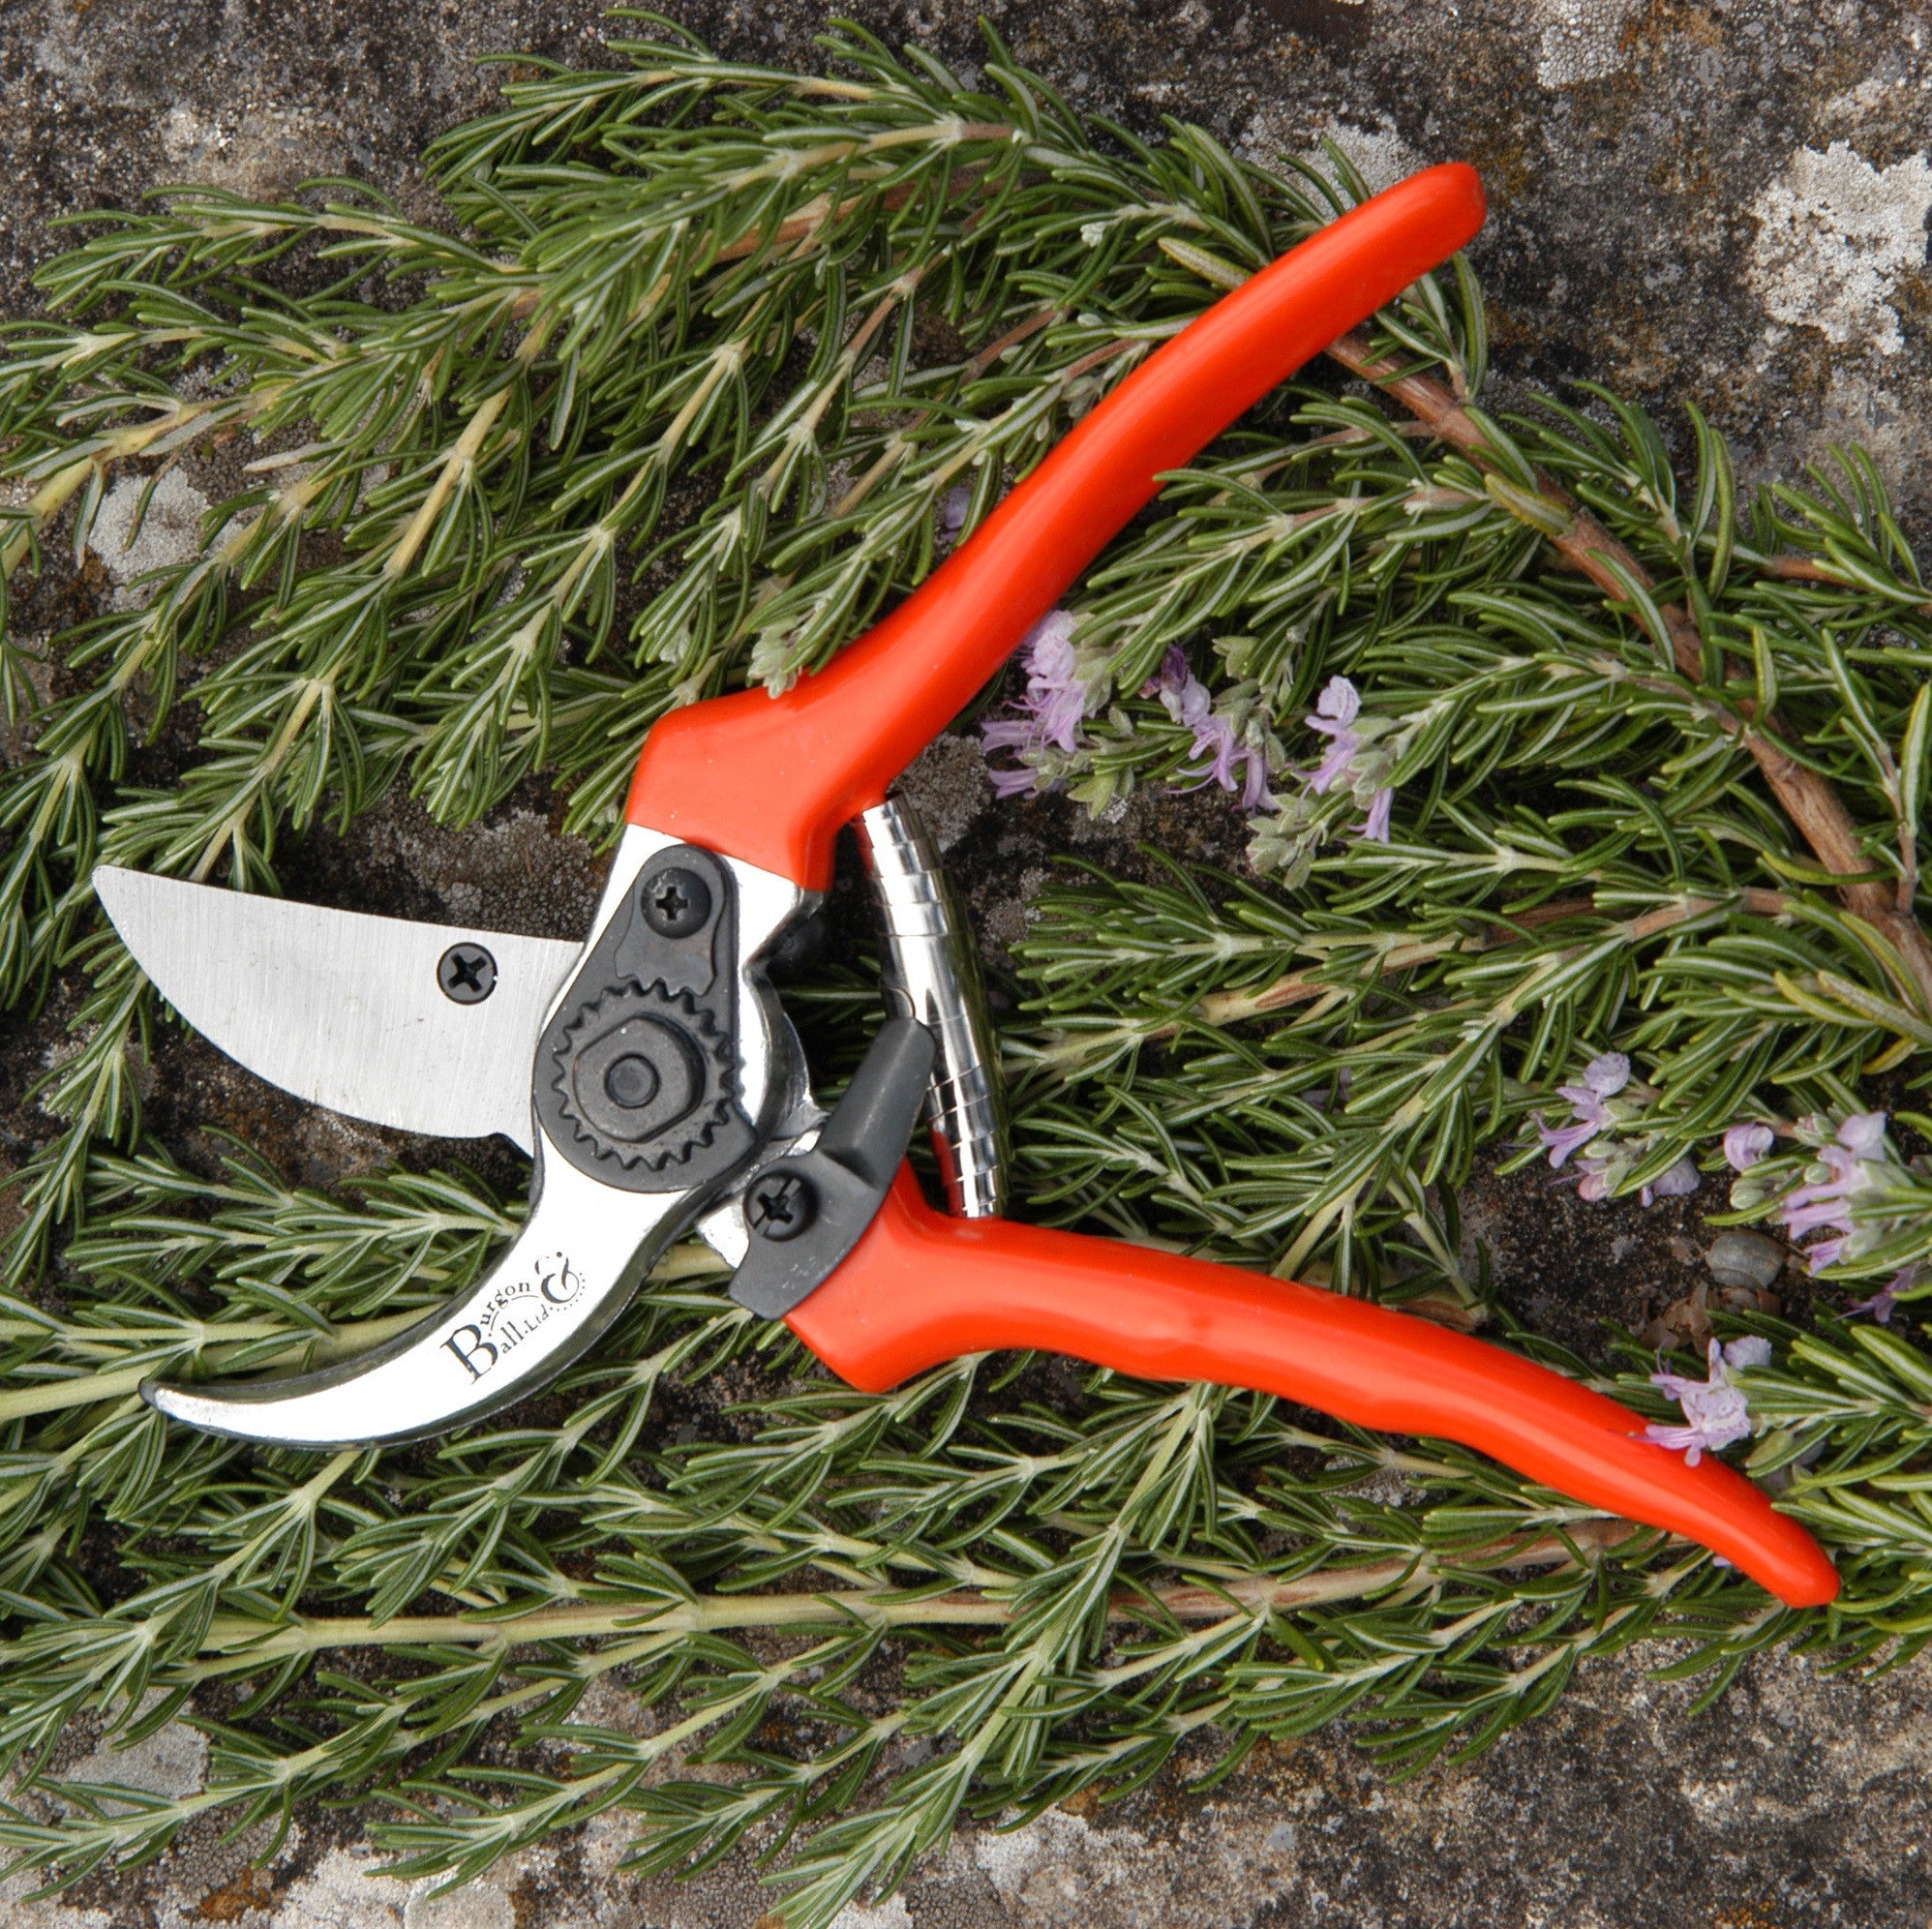 Bypass Secateurs - RHS Endorsed - The Potting Shed Garden Tools